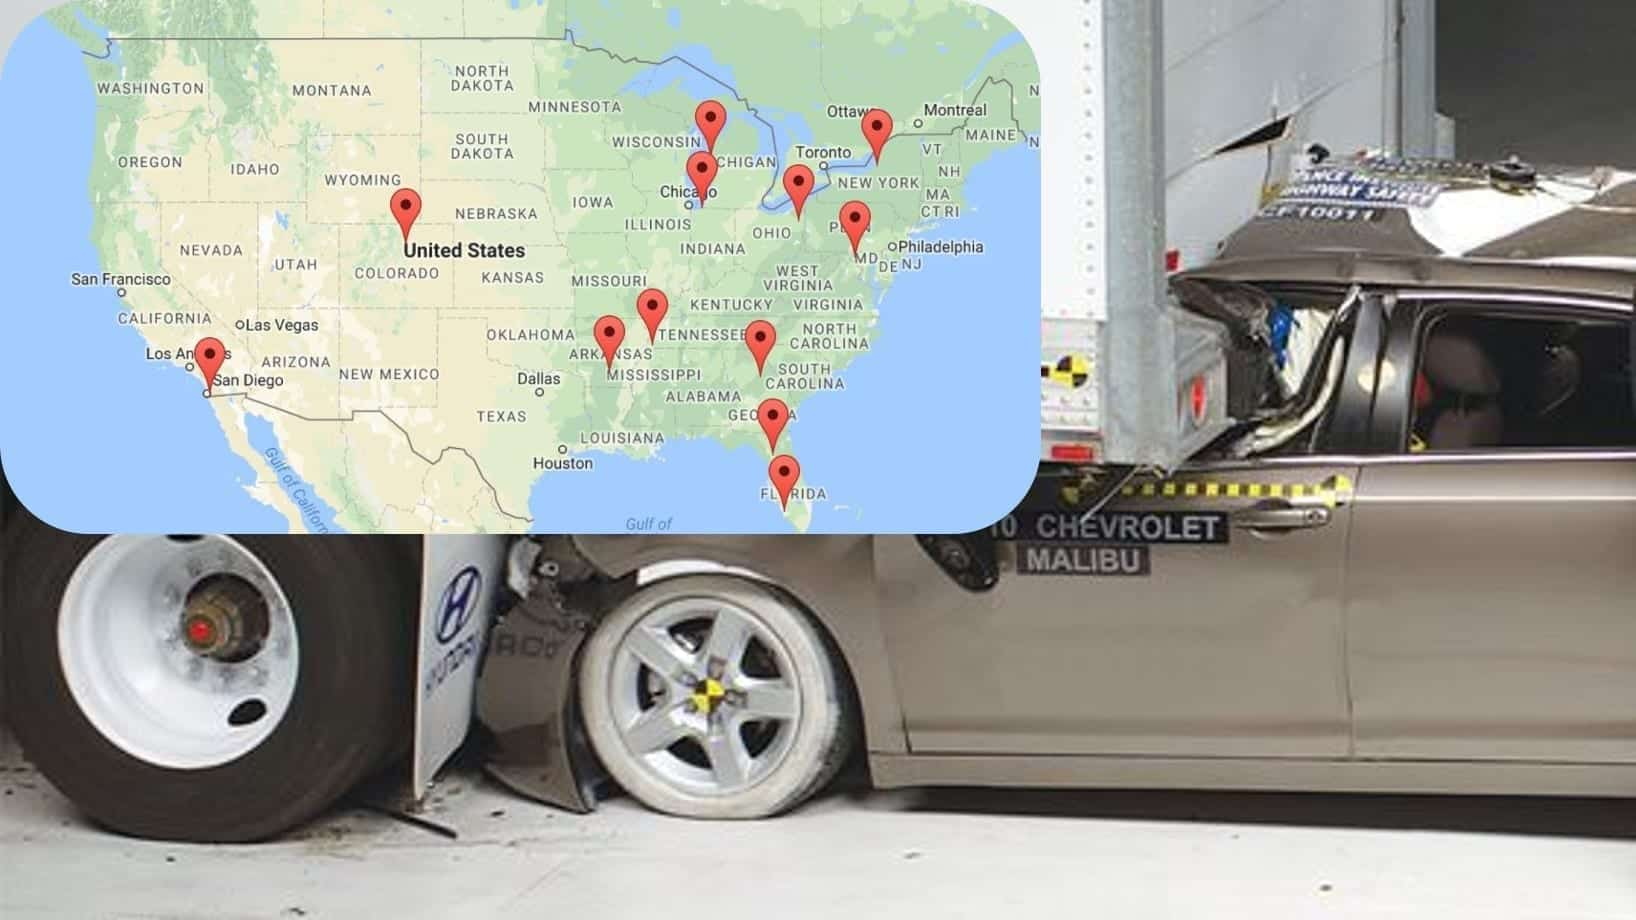 Karth's map showing crash-related deaths overlaid on a photo of a vehicle test with the vehicle crashing into the rear of a semi-truck. Map courtesy of www.fortrucksafety.com; crash test photo courtesy of www.iihs.org.